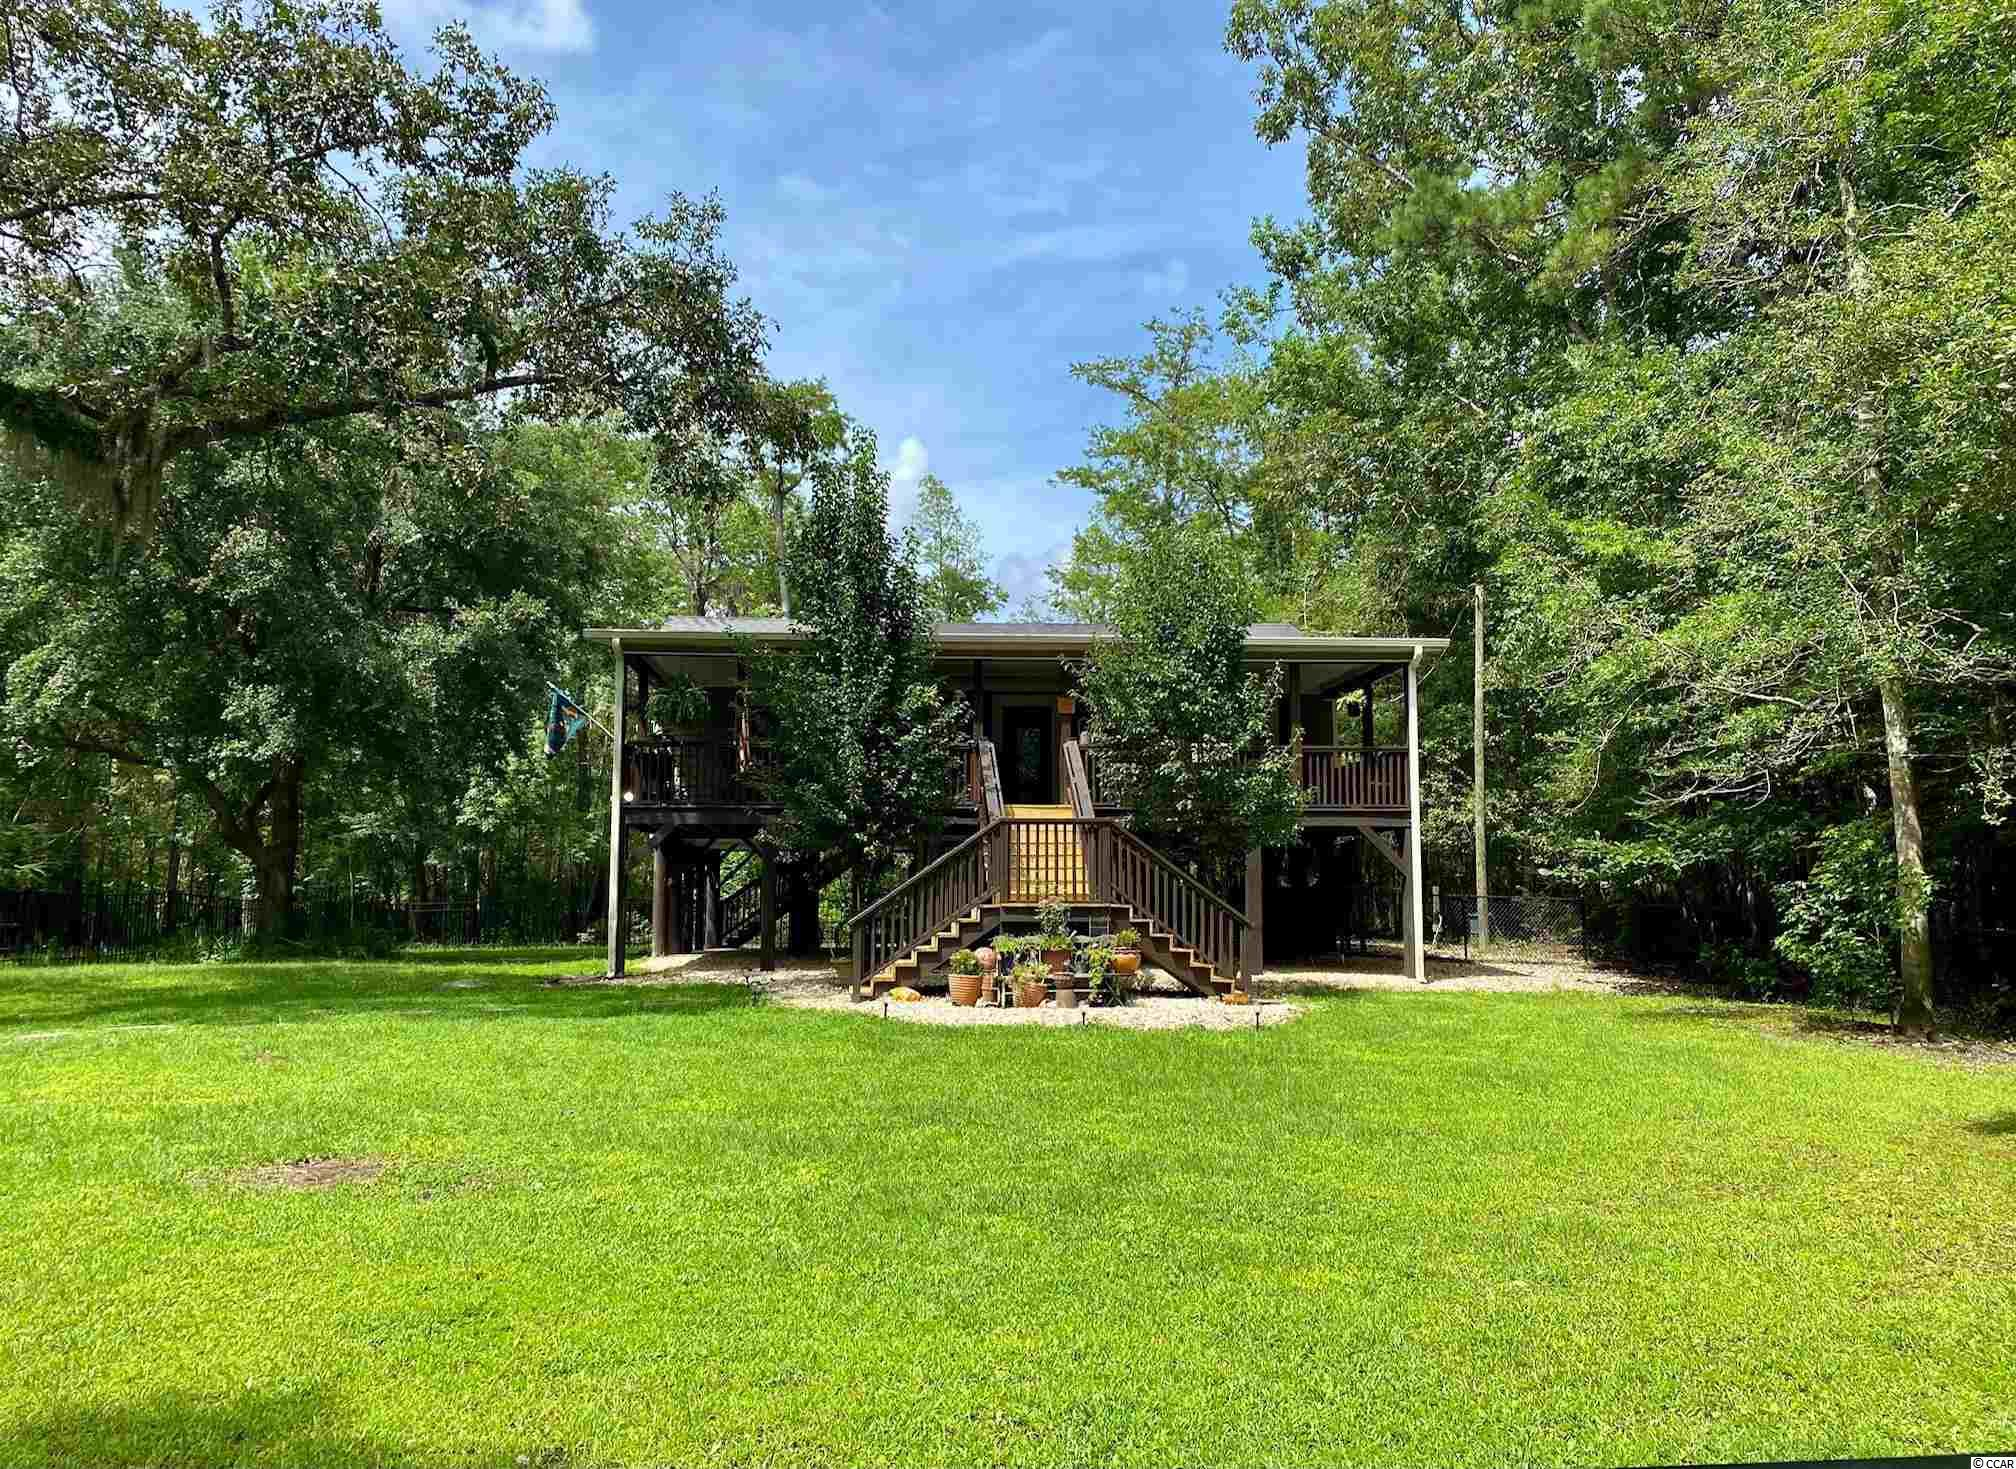 This home, as well as the property it is on, is an absolutely beautiful private Oasis! This 3BR/3BA single family home is positioned near the back of the property, allowing for a large front yard with large fenced portion. There is a semi private pond in the back yard to accommodate a small floating dock and is great for fishing or just trolling in a boat relaxing and enjoying the sounds of nature. This is a spacious three bedroom home with plenty of room for entertaining. Outdoor living areas include a 530 sq. ft. front porch perfect for your morning cup of coffee or afternoon cocktail, listen to the birds song and look out to see wild turkey and an occasional deer running through. The screened in back porch has cable TV hook-up and a back deck overlooking the pond. Fantastic solid fenced portion below home is perfect for storing your toys! Less than a mile to the local boat landing.  Come make this piece of paradise your very own! Owner is a licensed South Carolina Realtor.